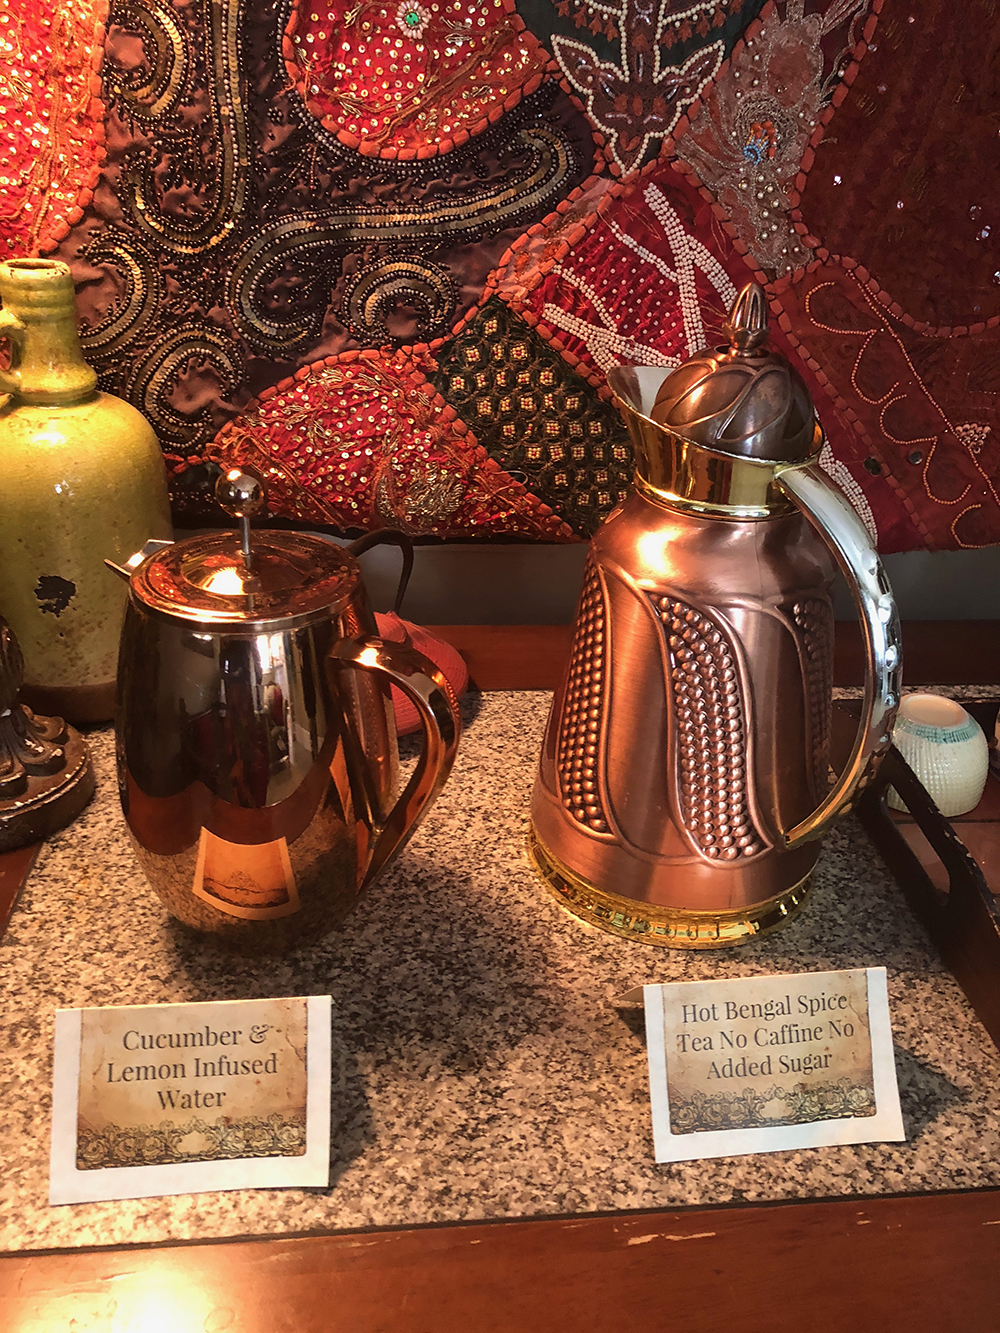 Guests are offered a choice of refreshing cucumber and lemon-infused water or hot Bengal spice tea.